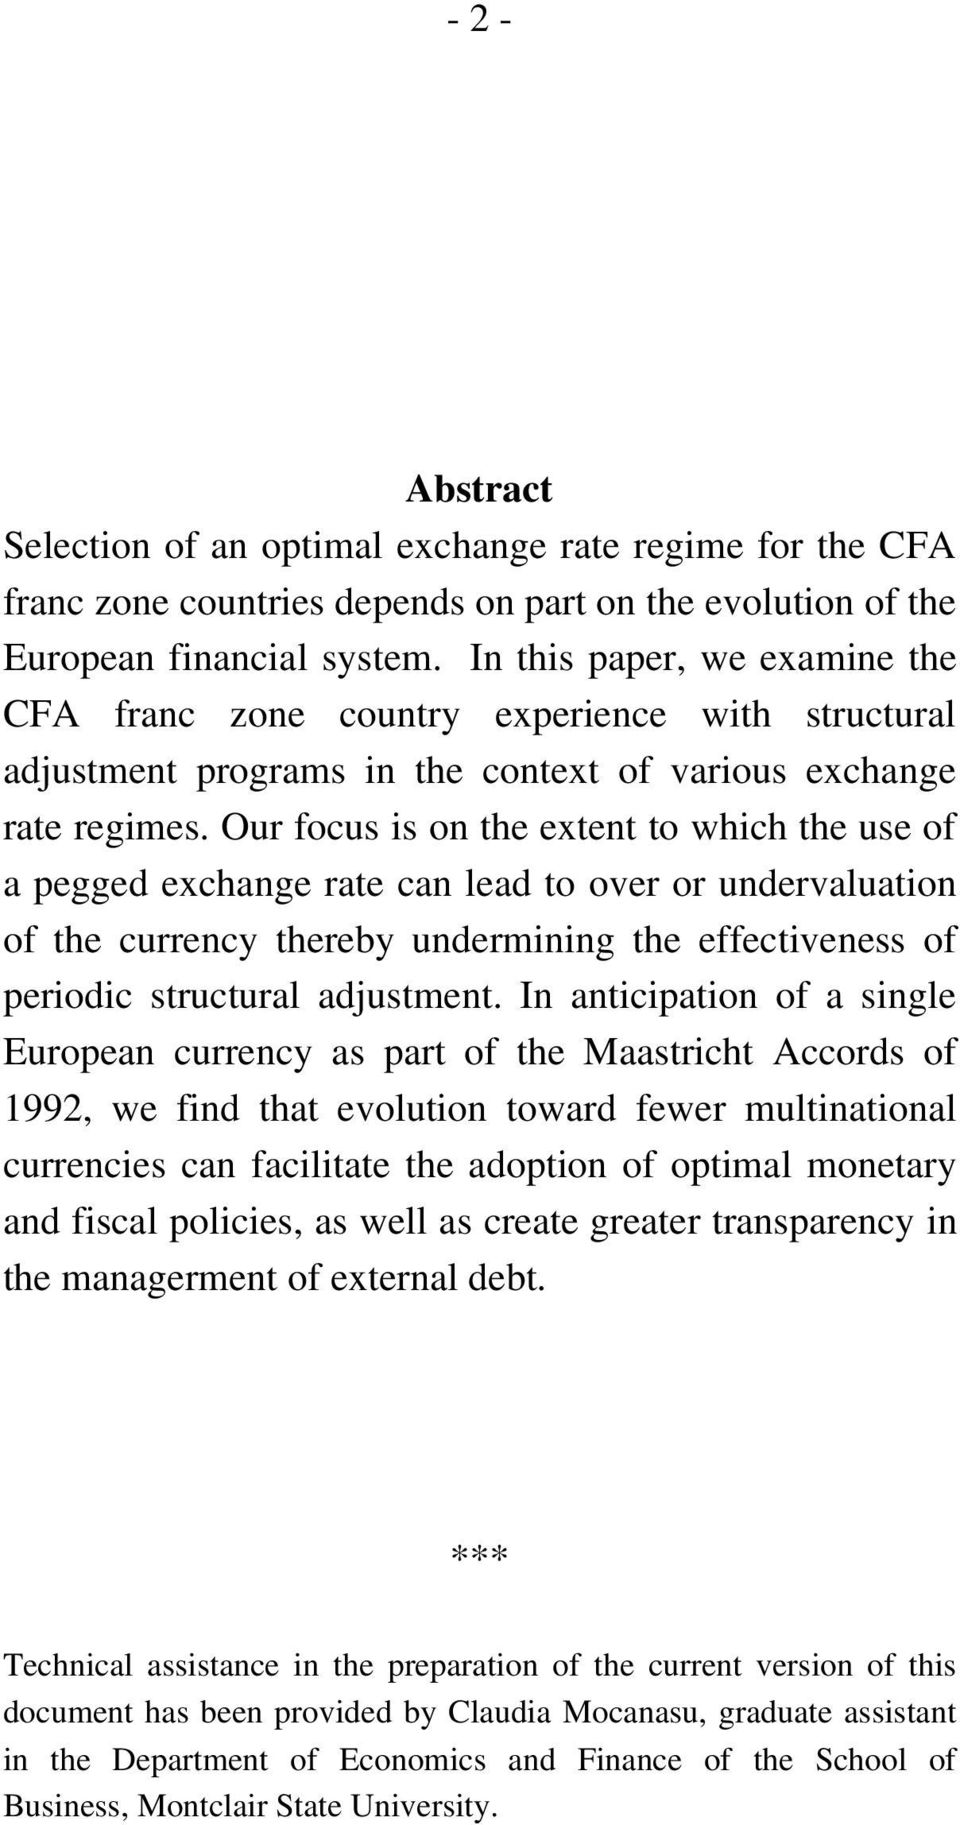 Our focus is on the extent to which the use of a pegged exchange rate can lead to over or undervaluation of the currency thereby undermining the effectiveness of periodic structural adjustment.